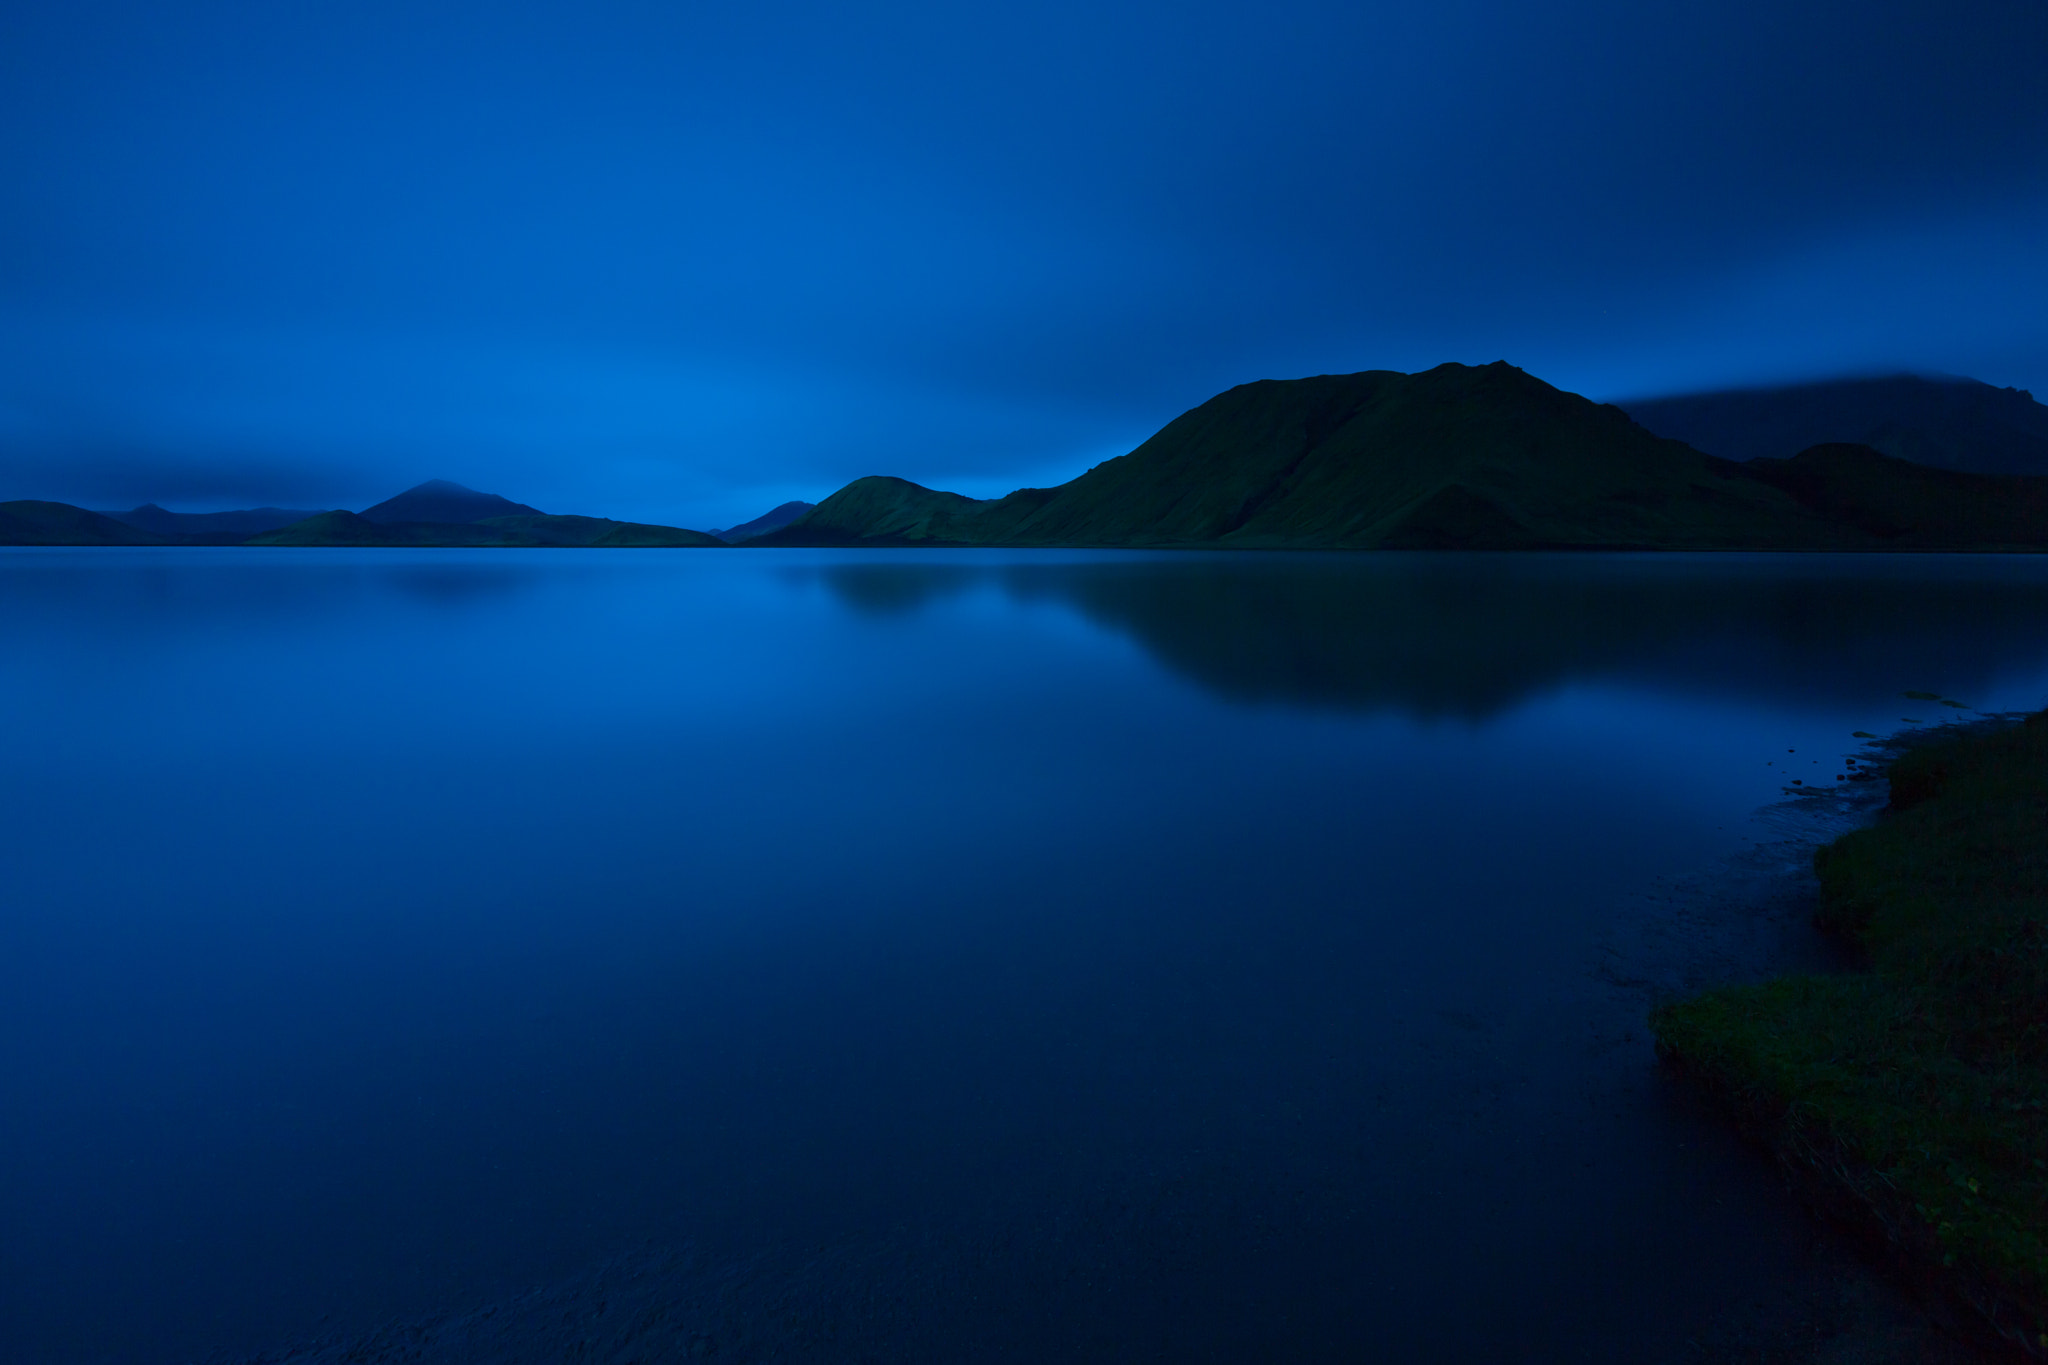 Photograph Darkness by Christoph Balzer on 500px